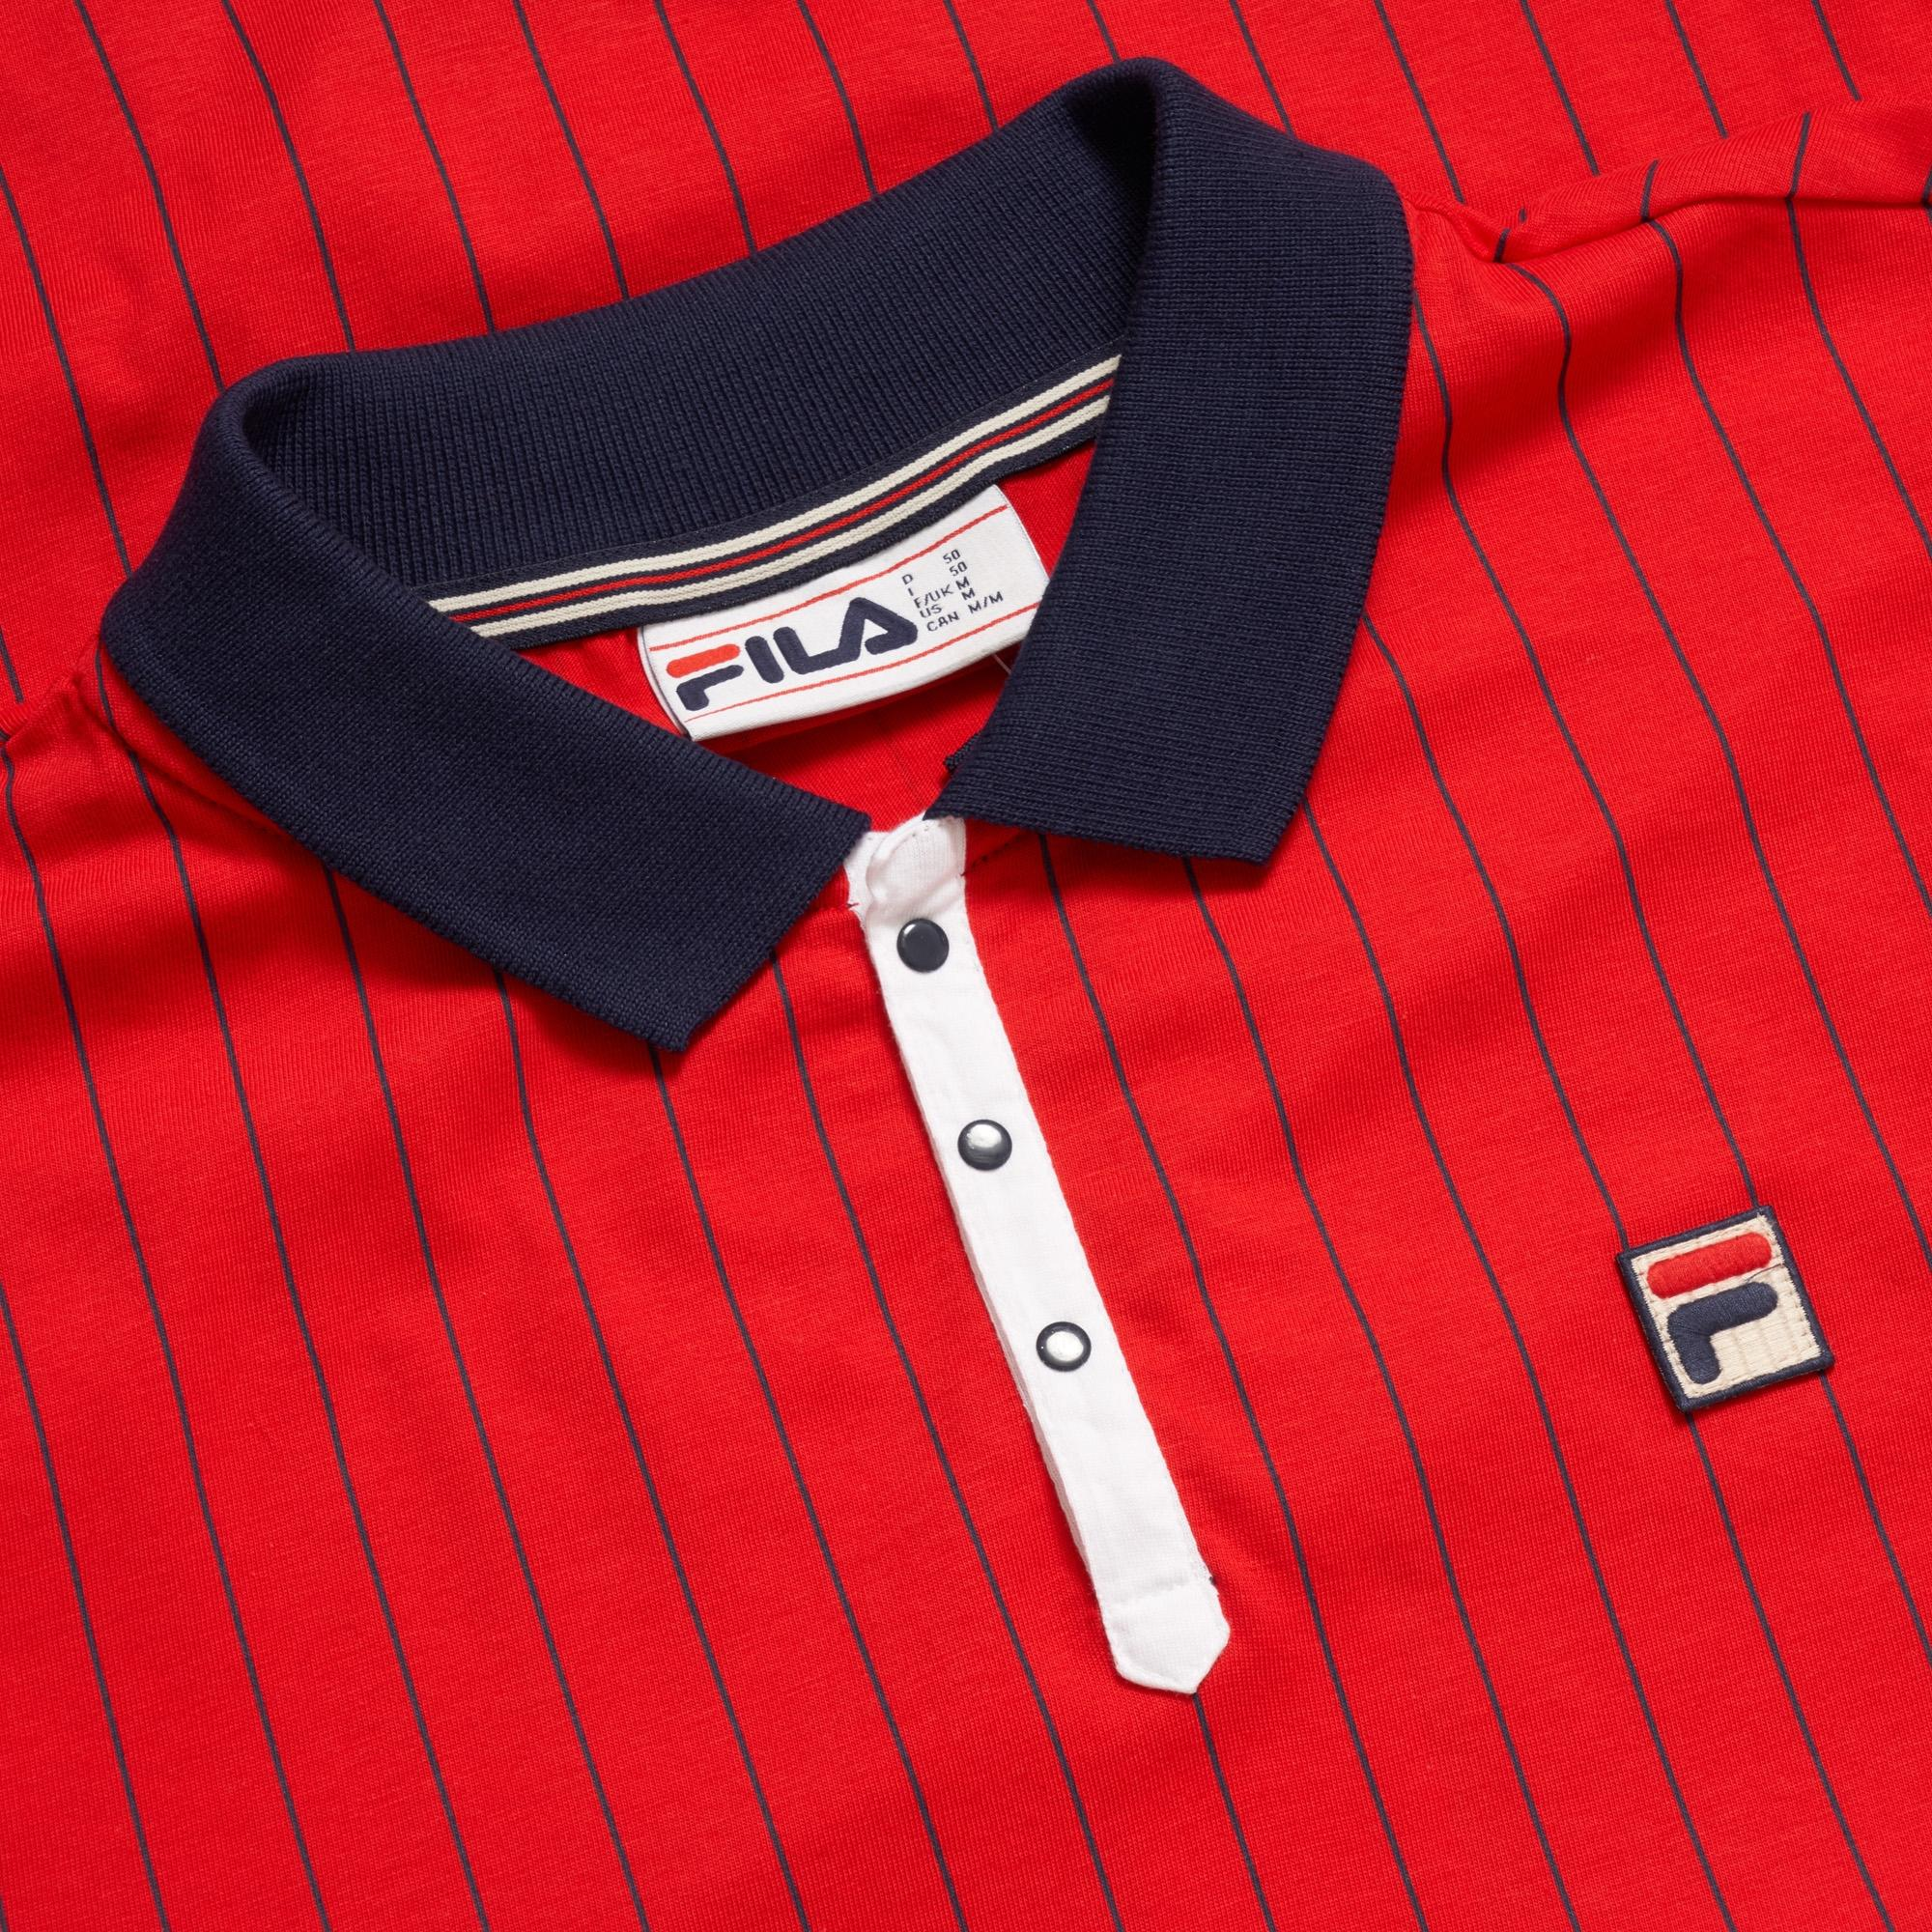 dc29d31c4 Fila Vintage Bb1 Polo Shirt – EDGE Engineering and Consulting Limited